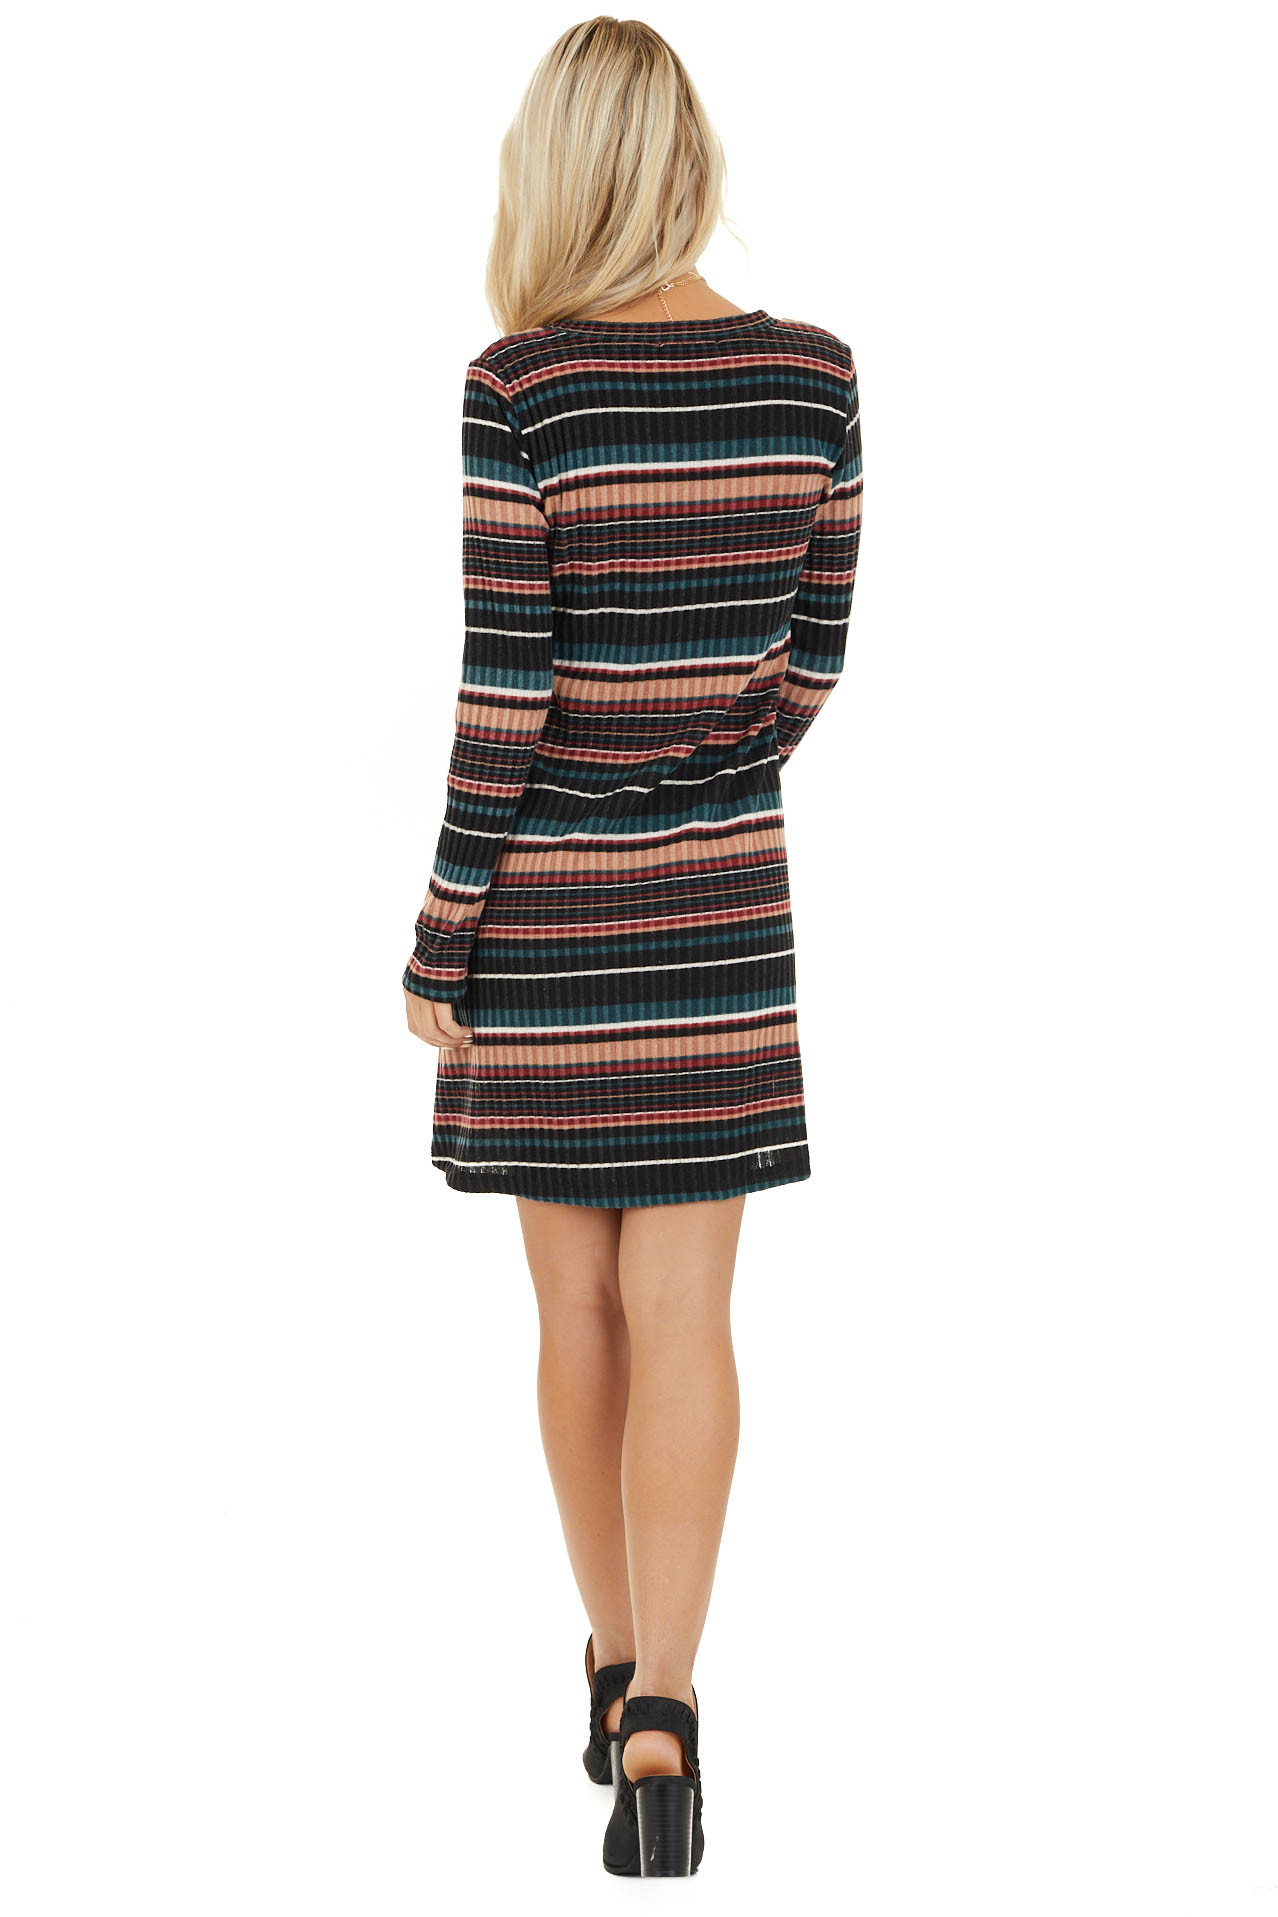 Black Multi Color Striped Sweater Dress with Front Pockets back full body